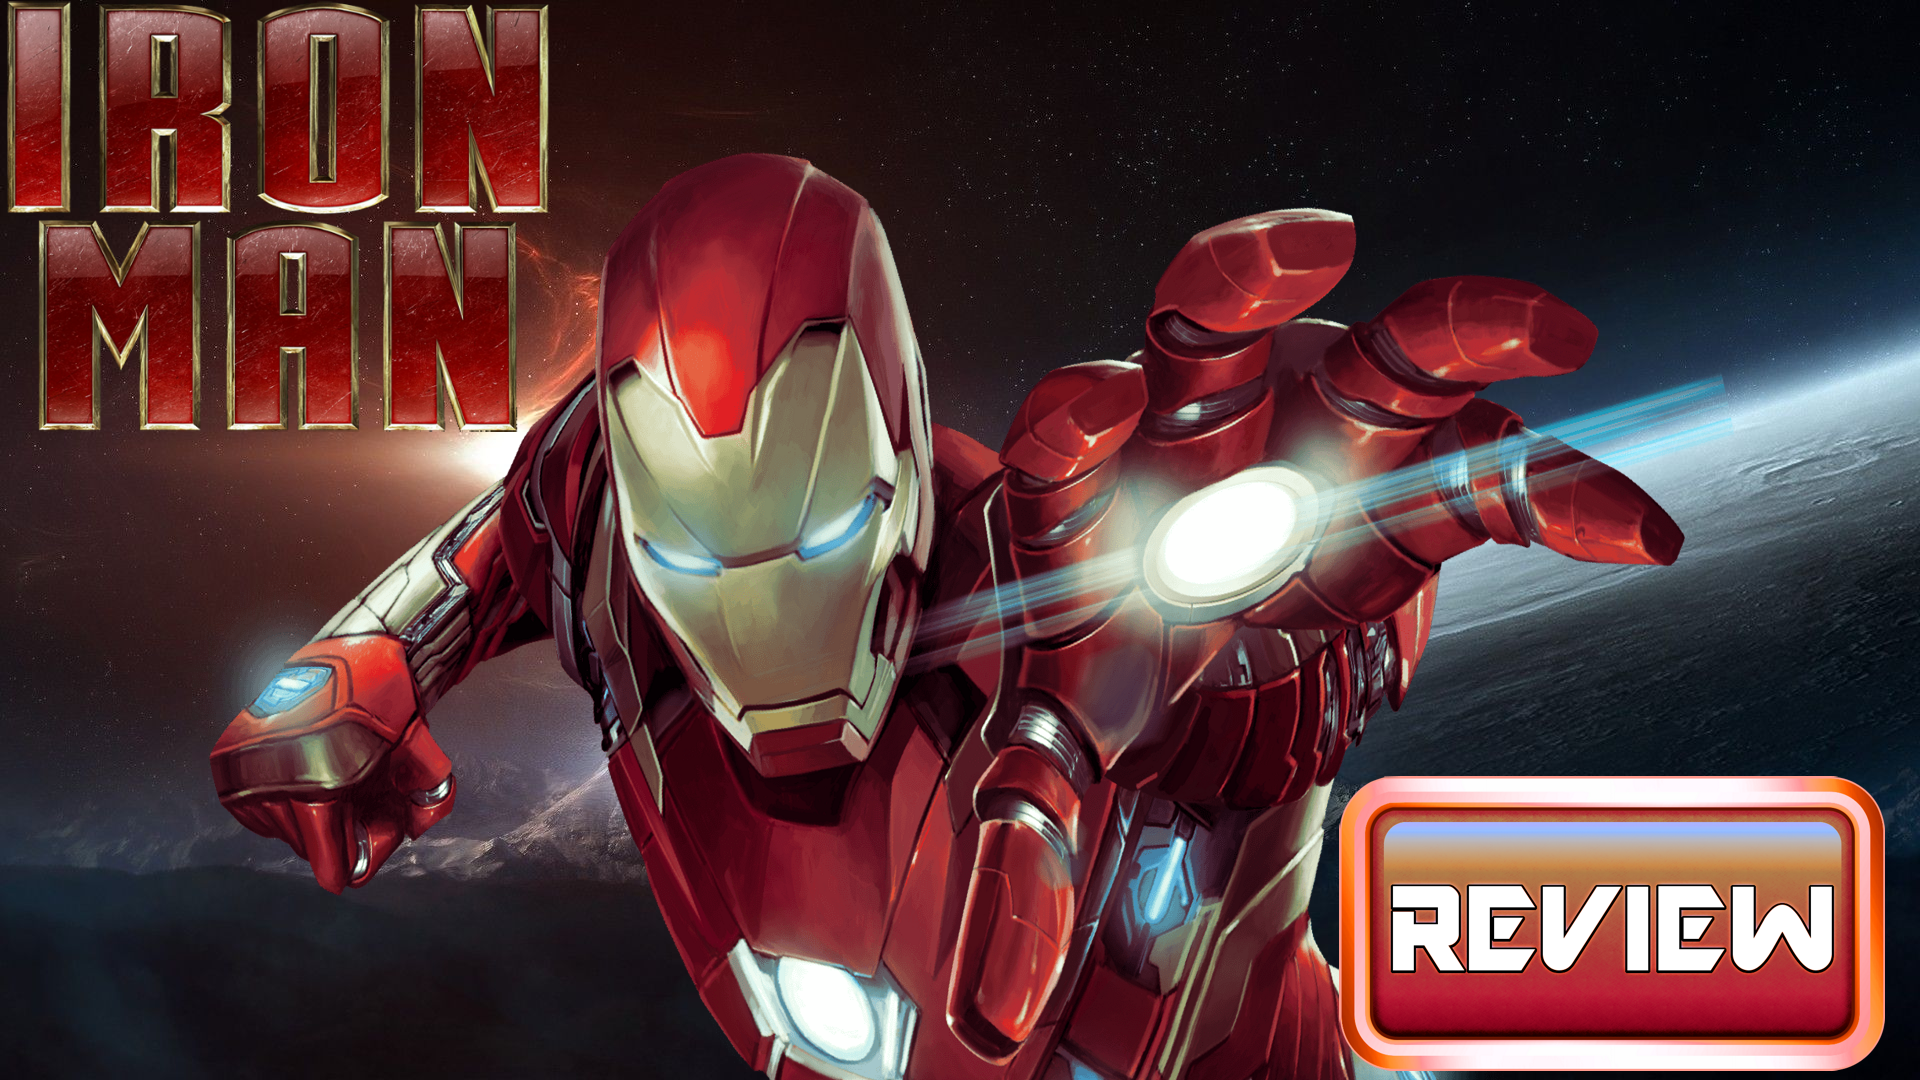 Iron Man 2008 Mini Review The Analytic Critic By Kyle Wiseman Marvel Cinematic Universe Reviews Medium